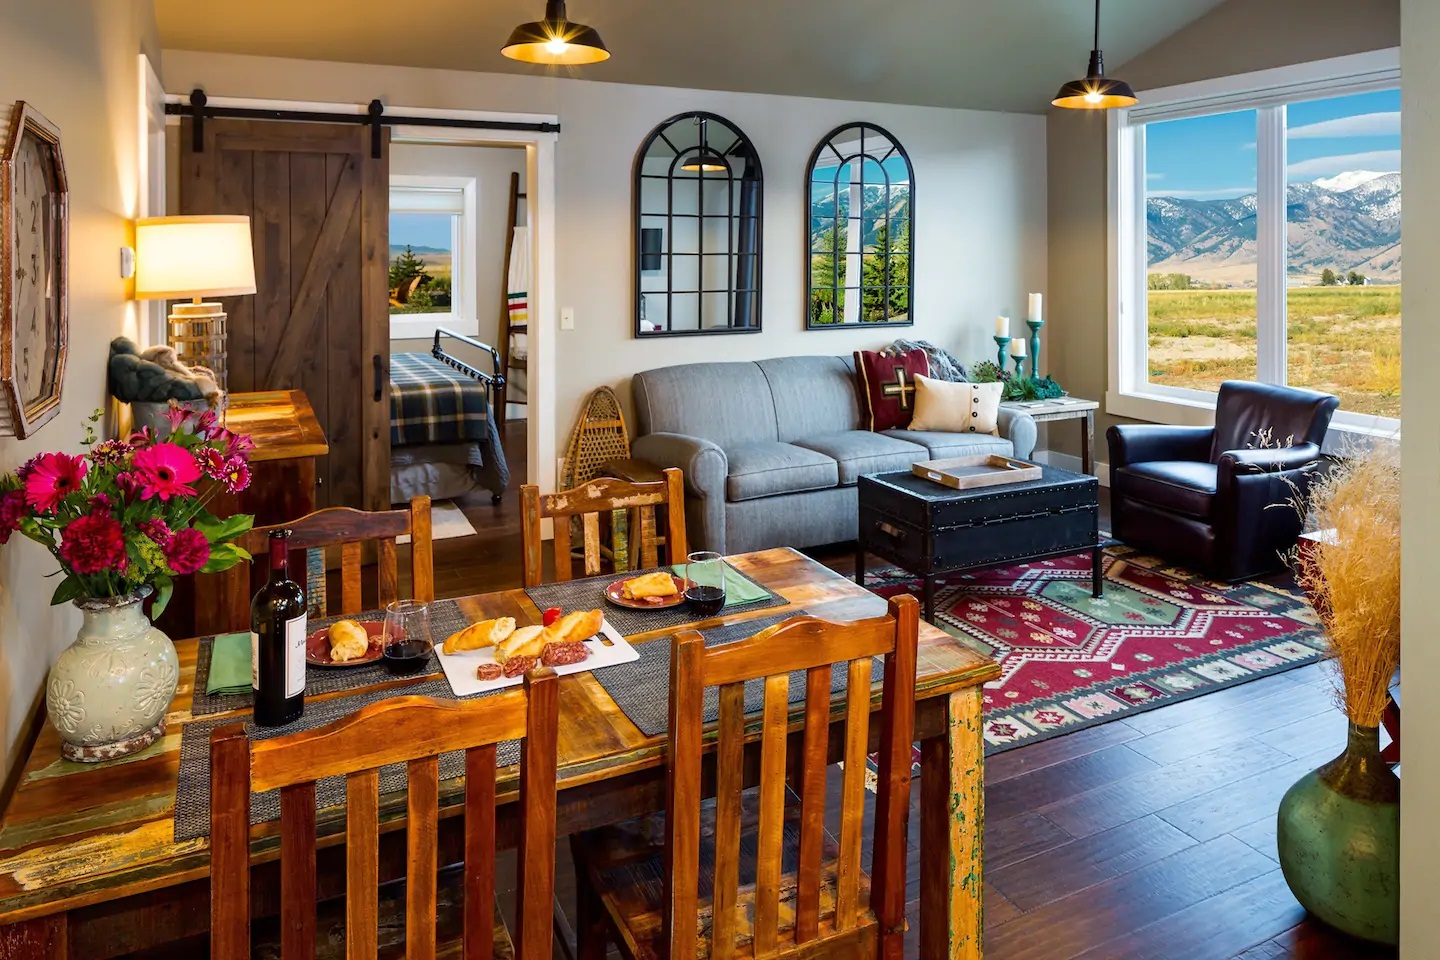 Photo of a living room and dining table inside an Airbnb located in Belgrade, Montana.